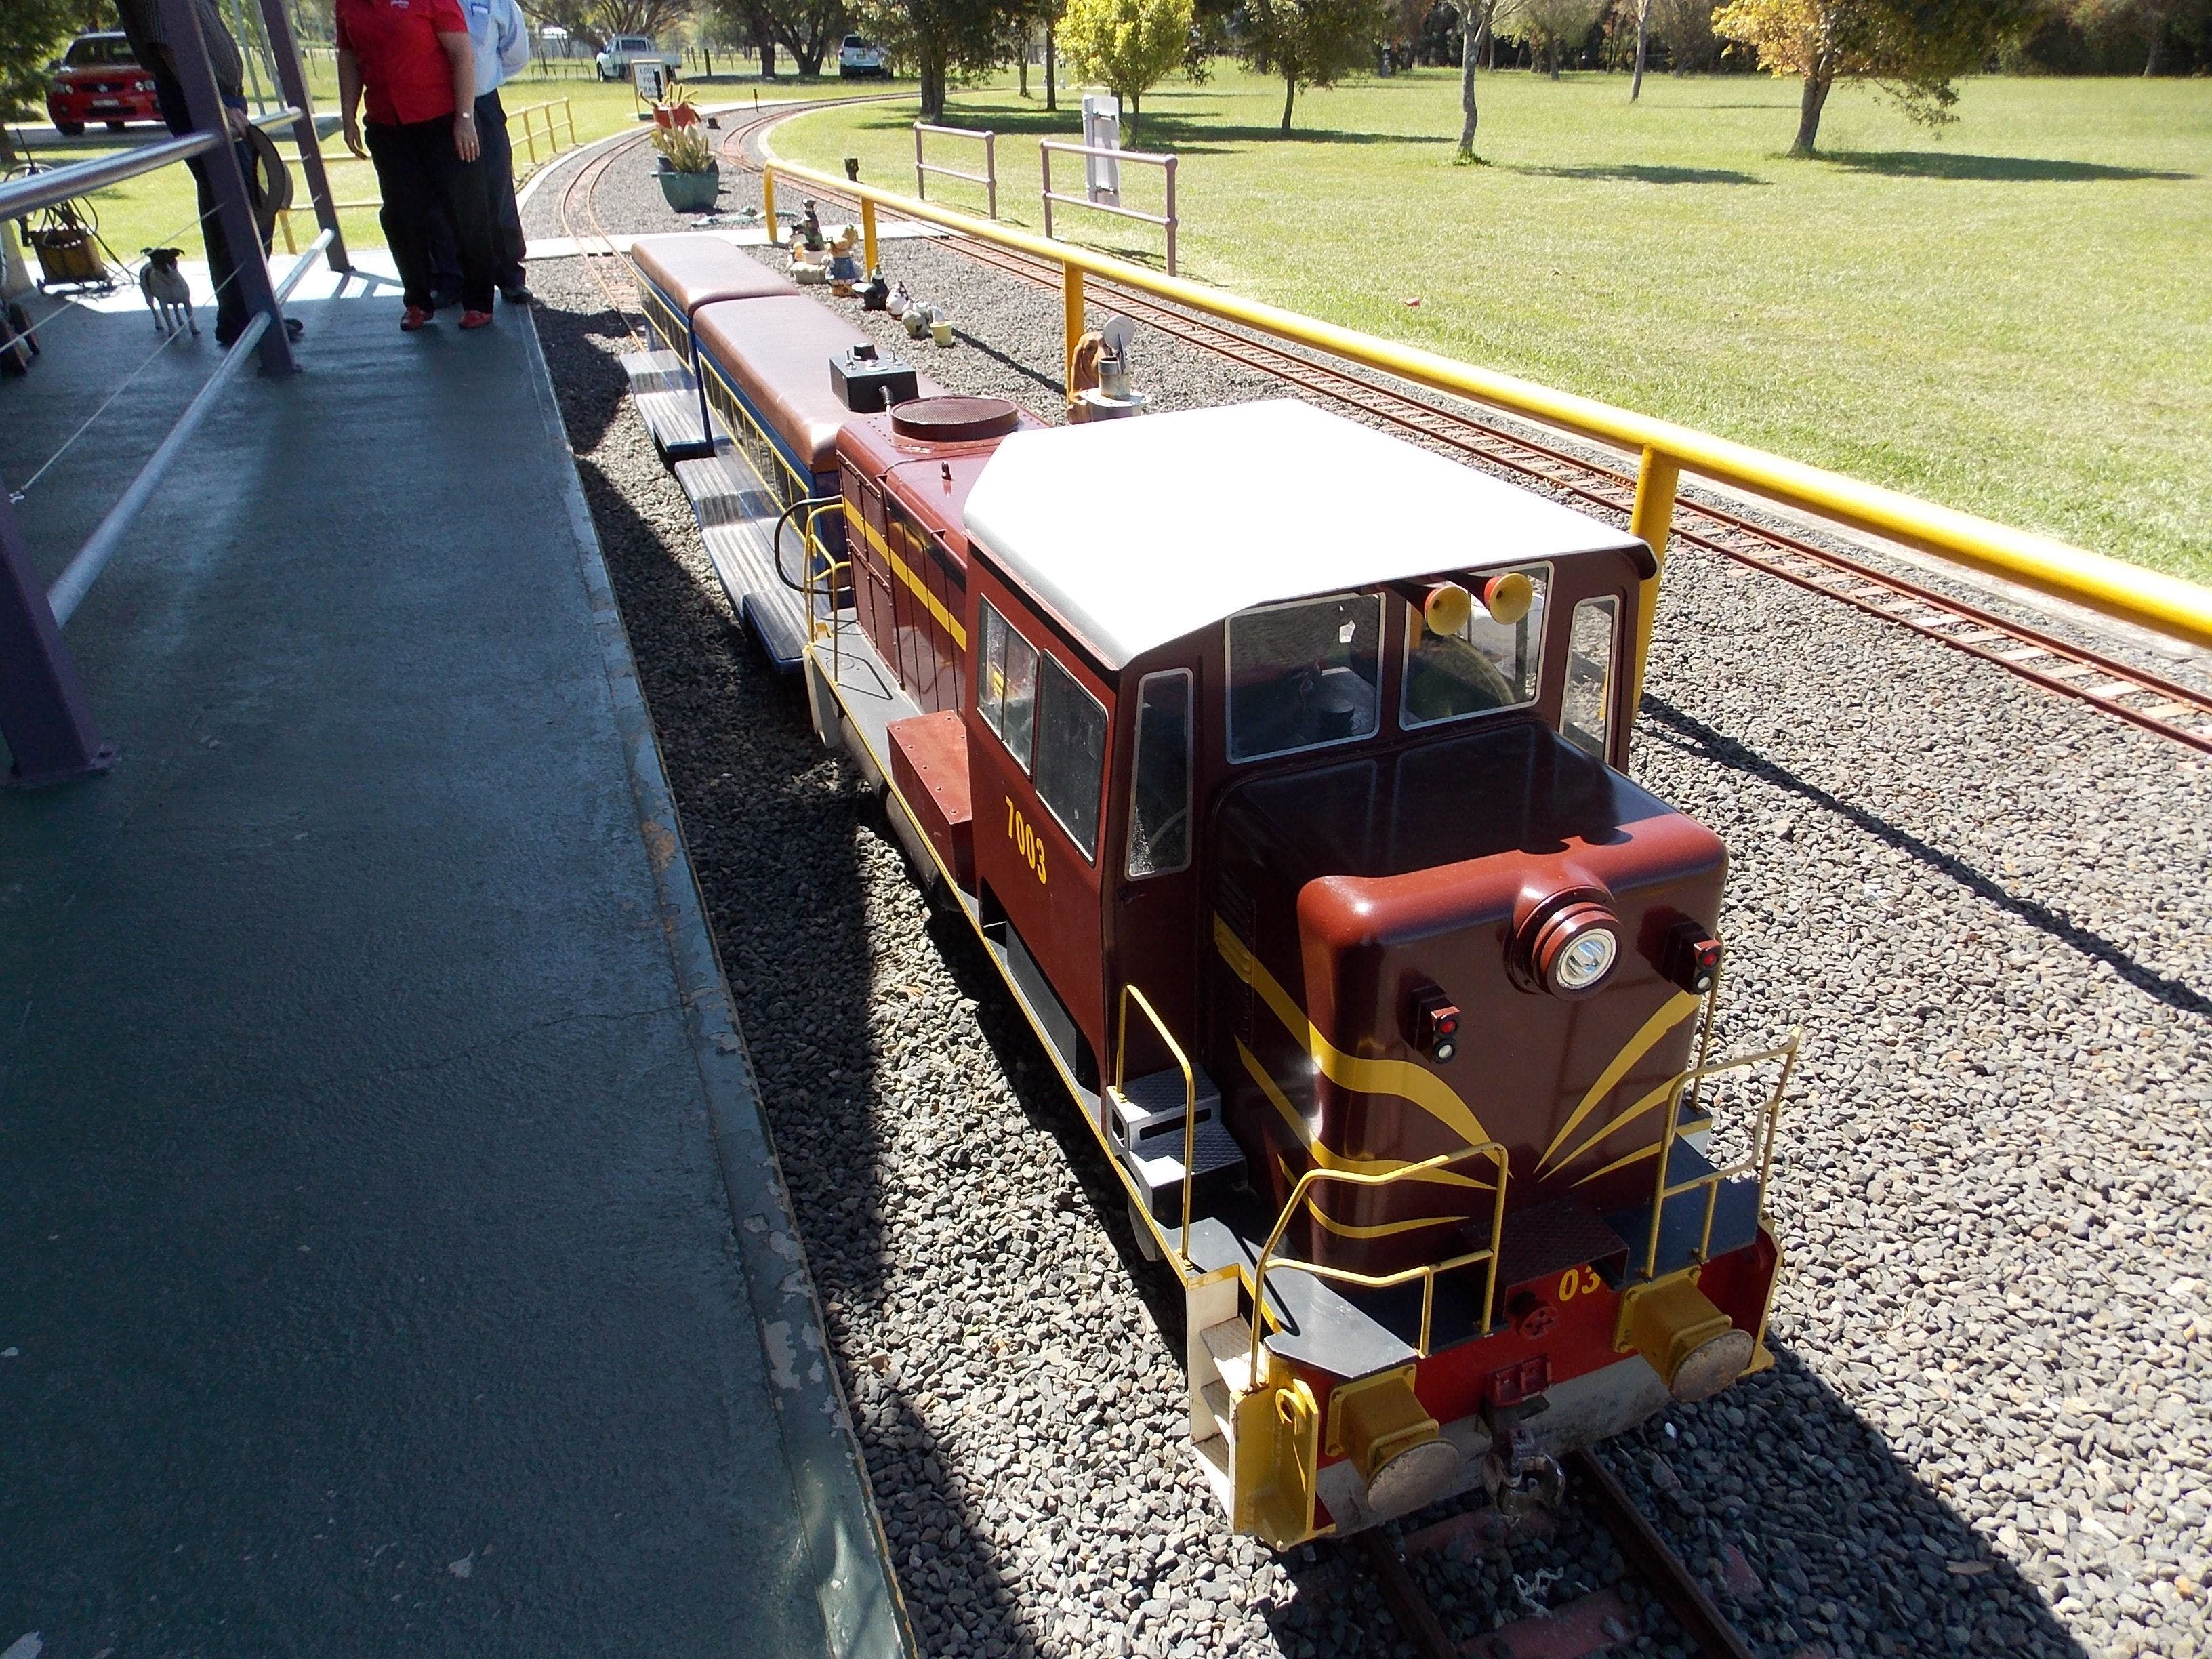 Penwood Miniature Railway - Accommodation Nelson Bay